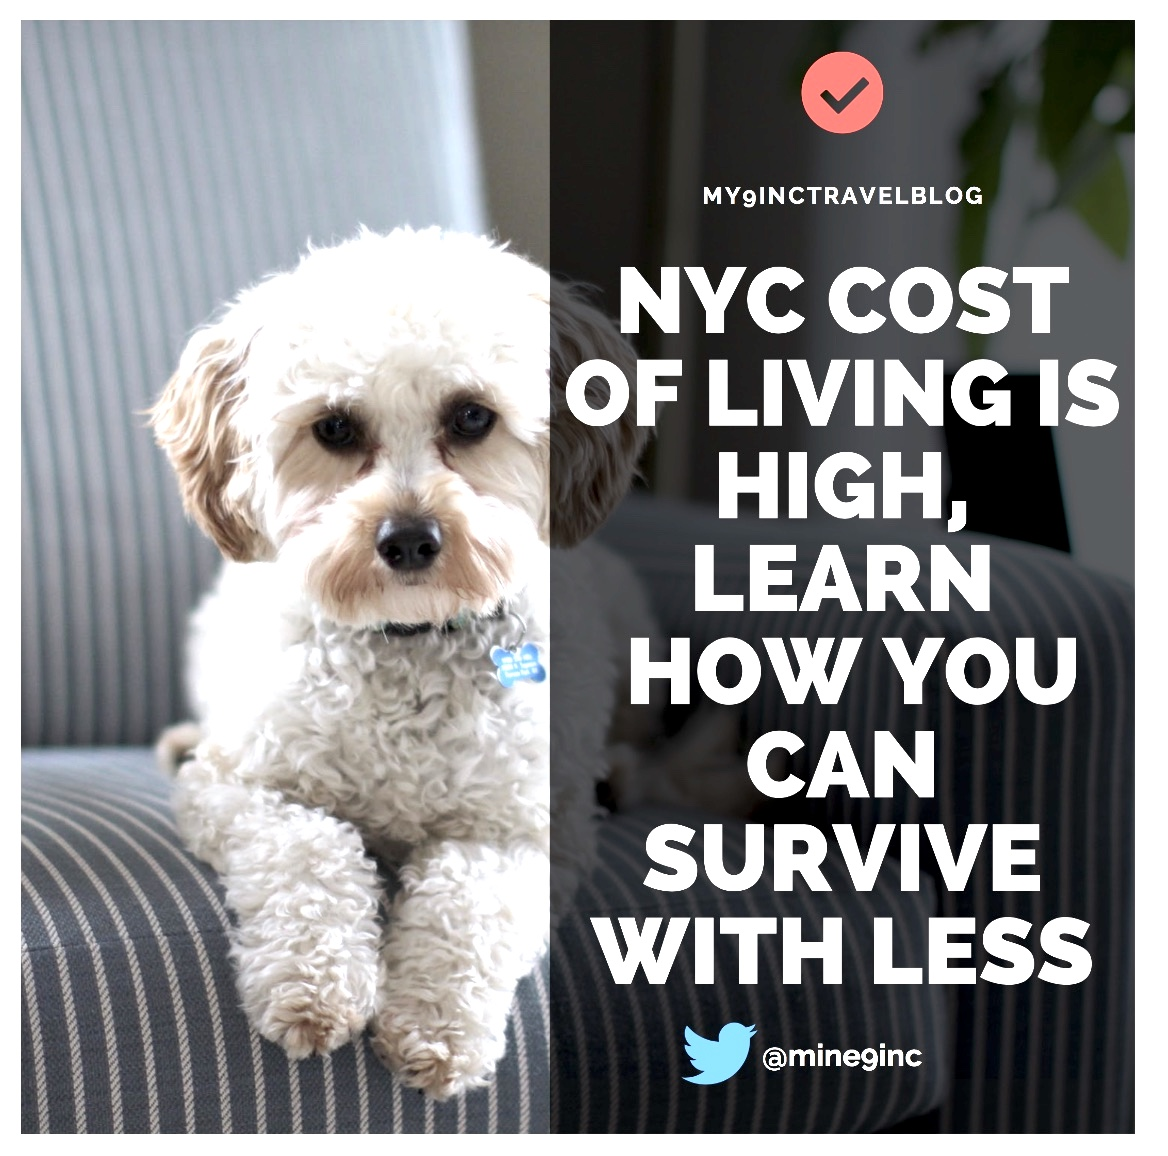 NYC costs of living